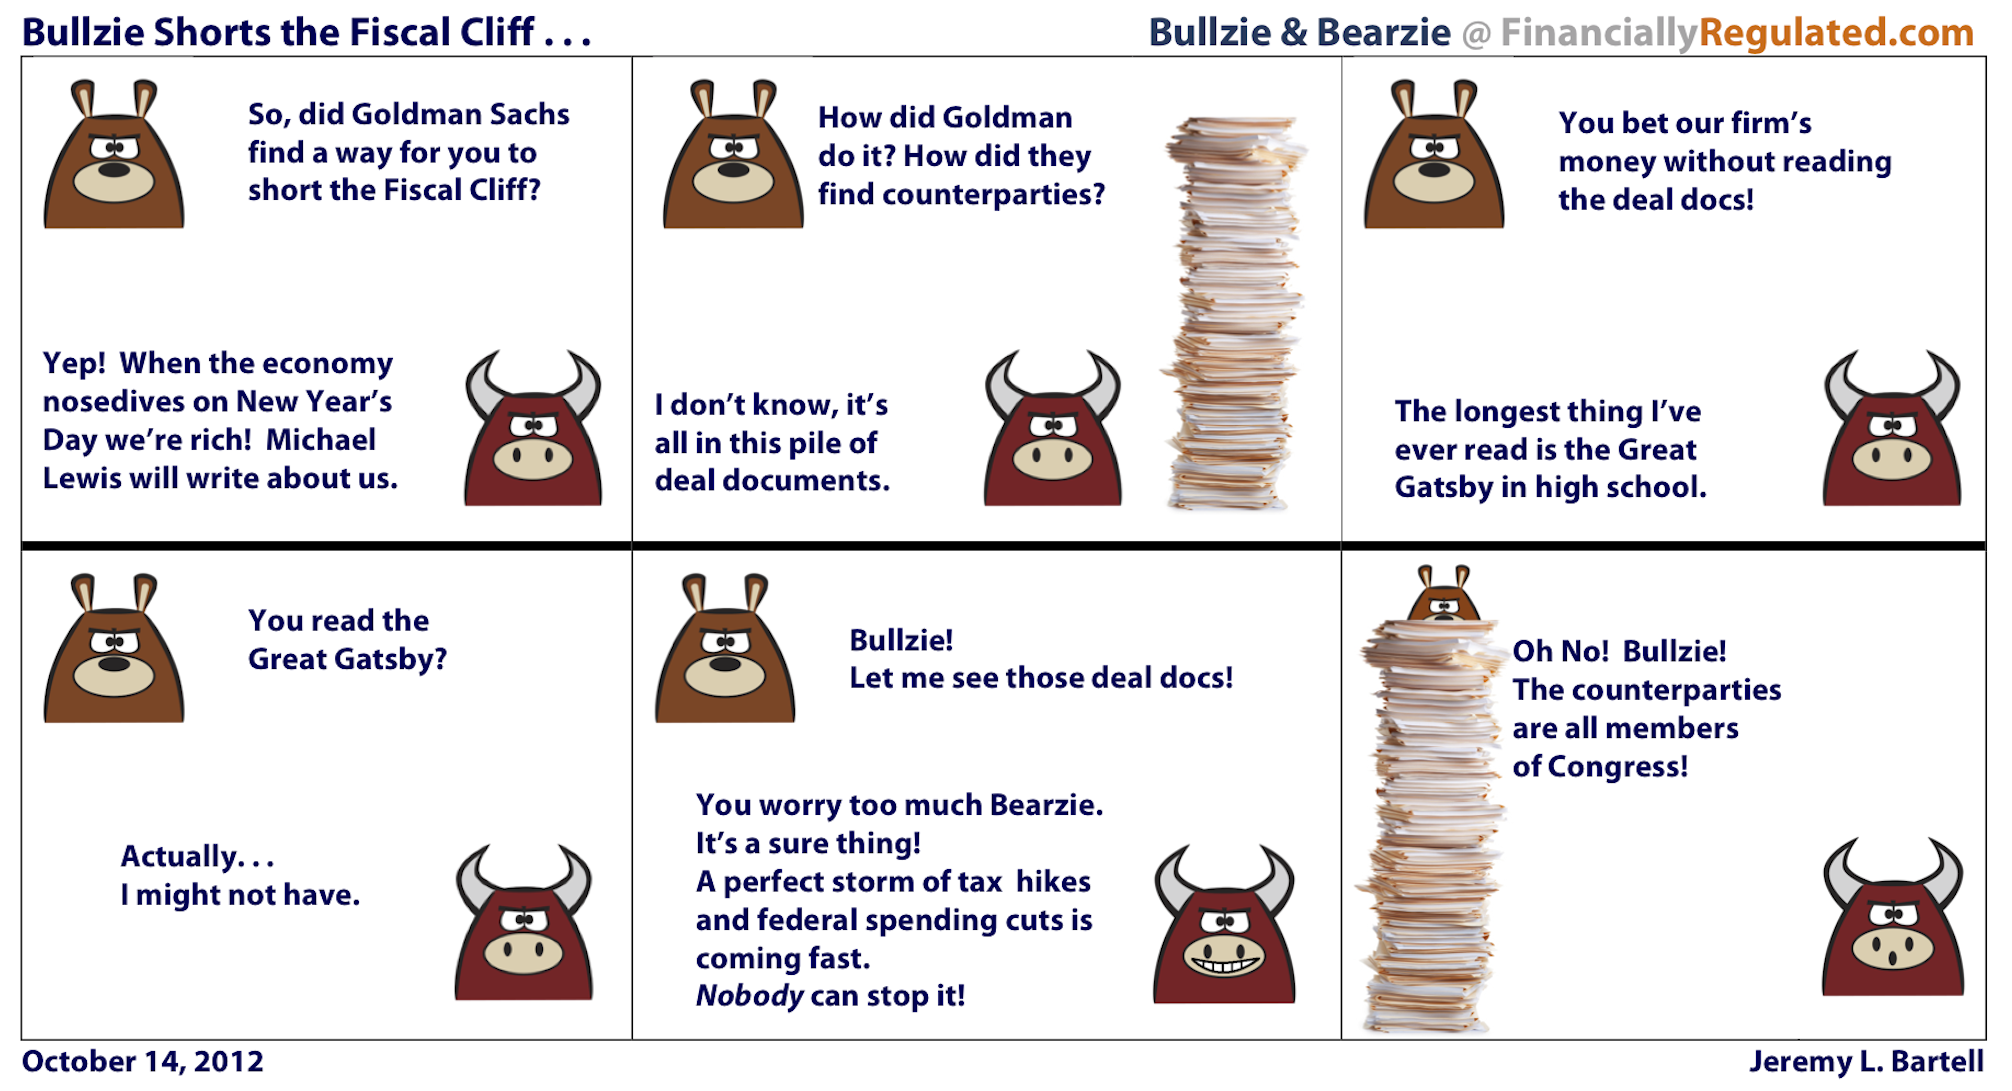 Bullzie Shorts the Fiscal Cliff